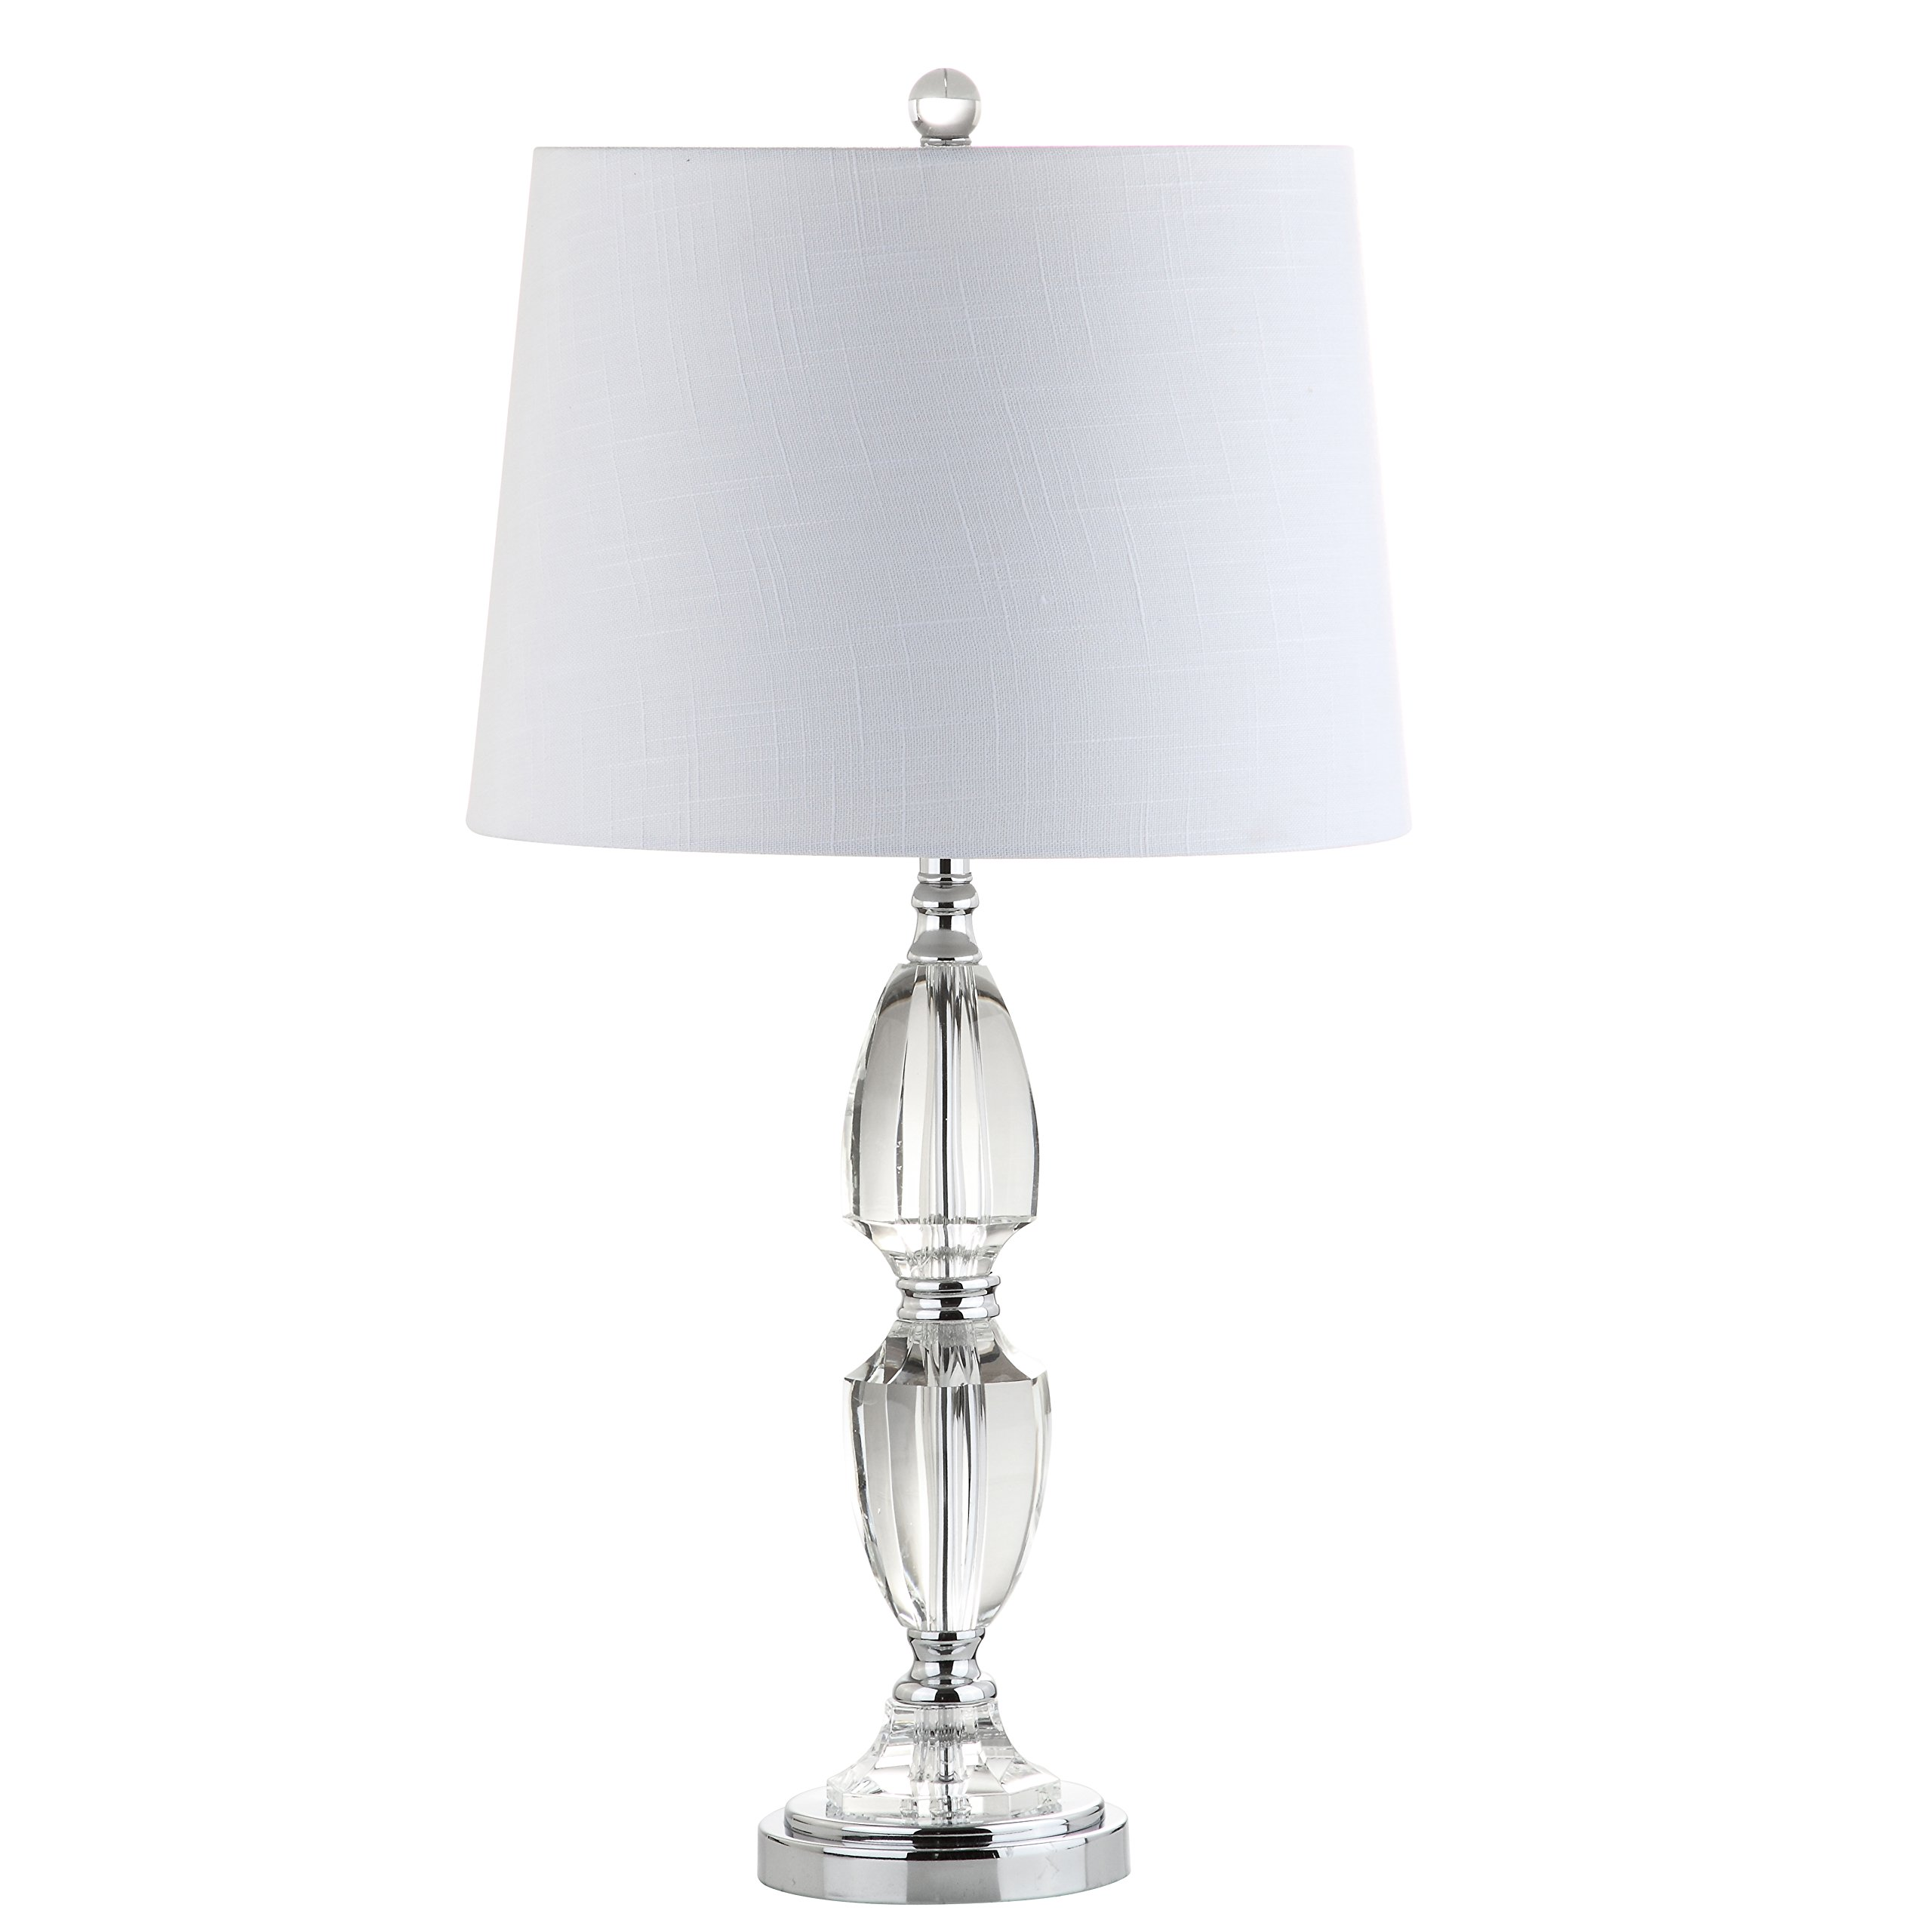 Jonathan Y JYL2039A Table Lamp, 14'' x 27'' x 14'', Clear/Chrome with White Shade